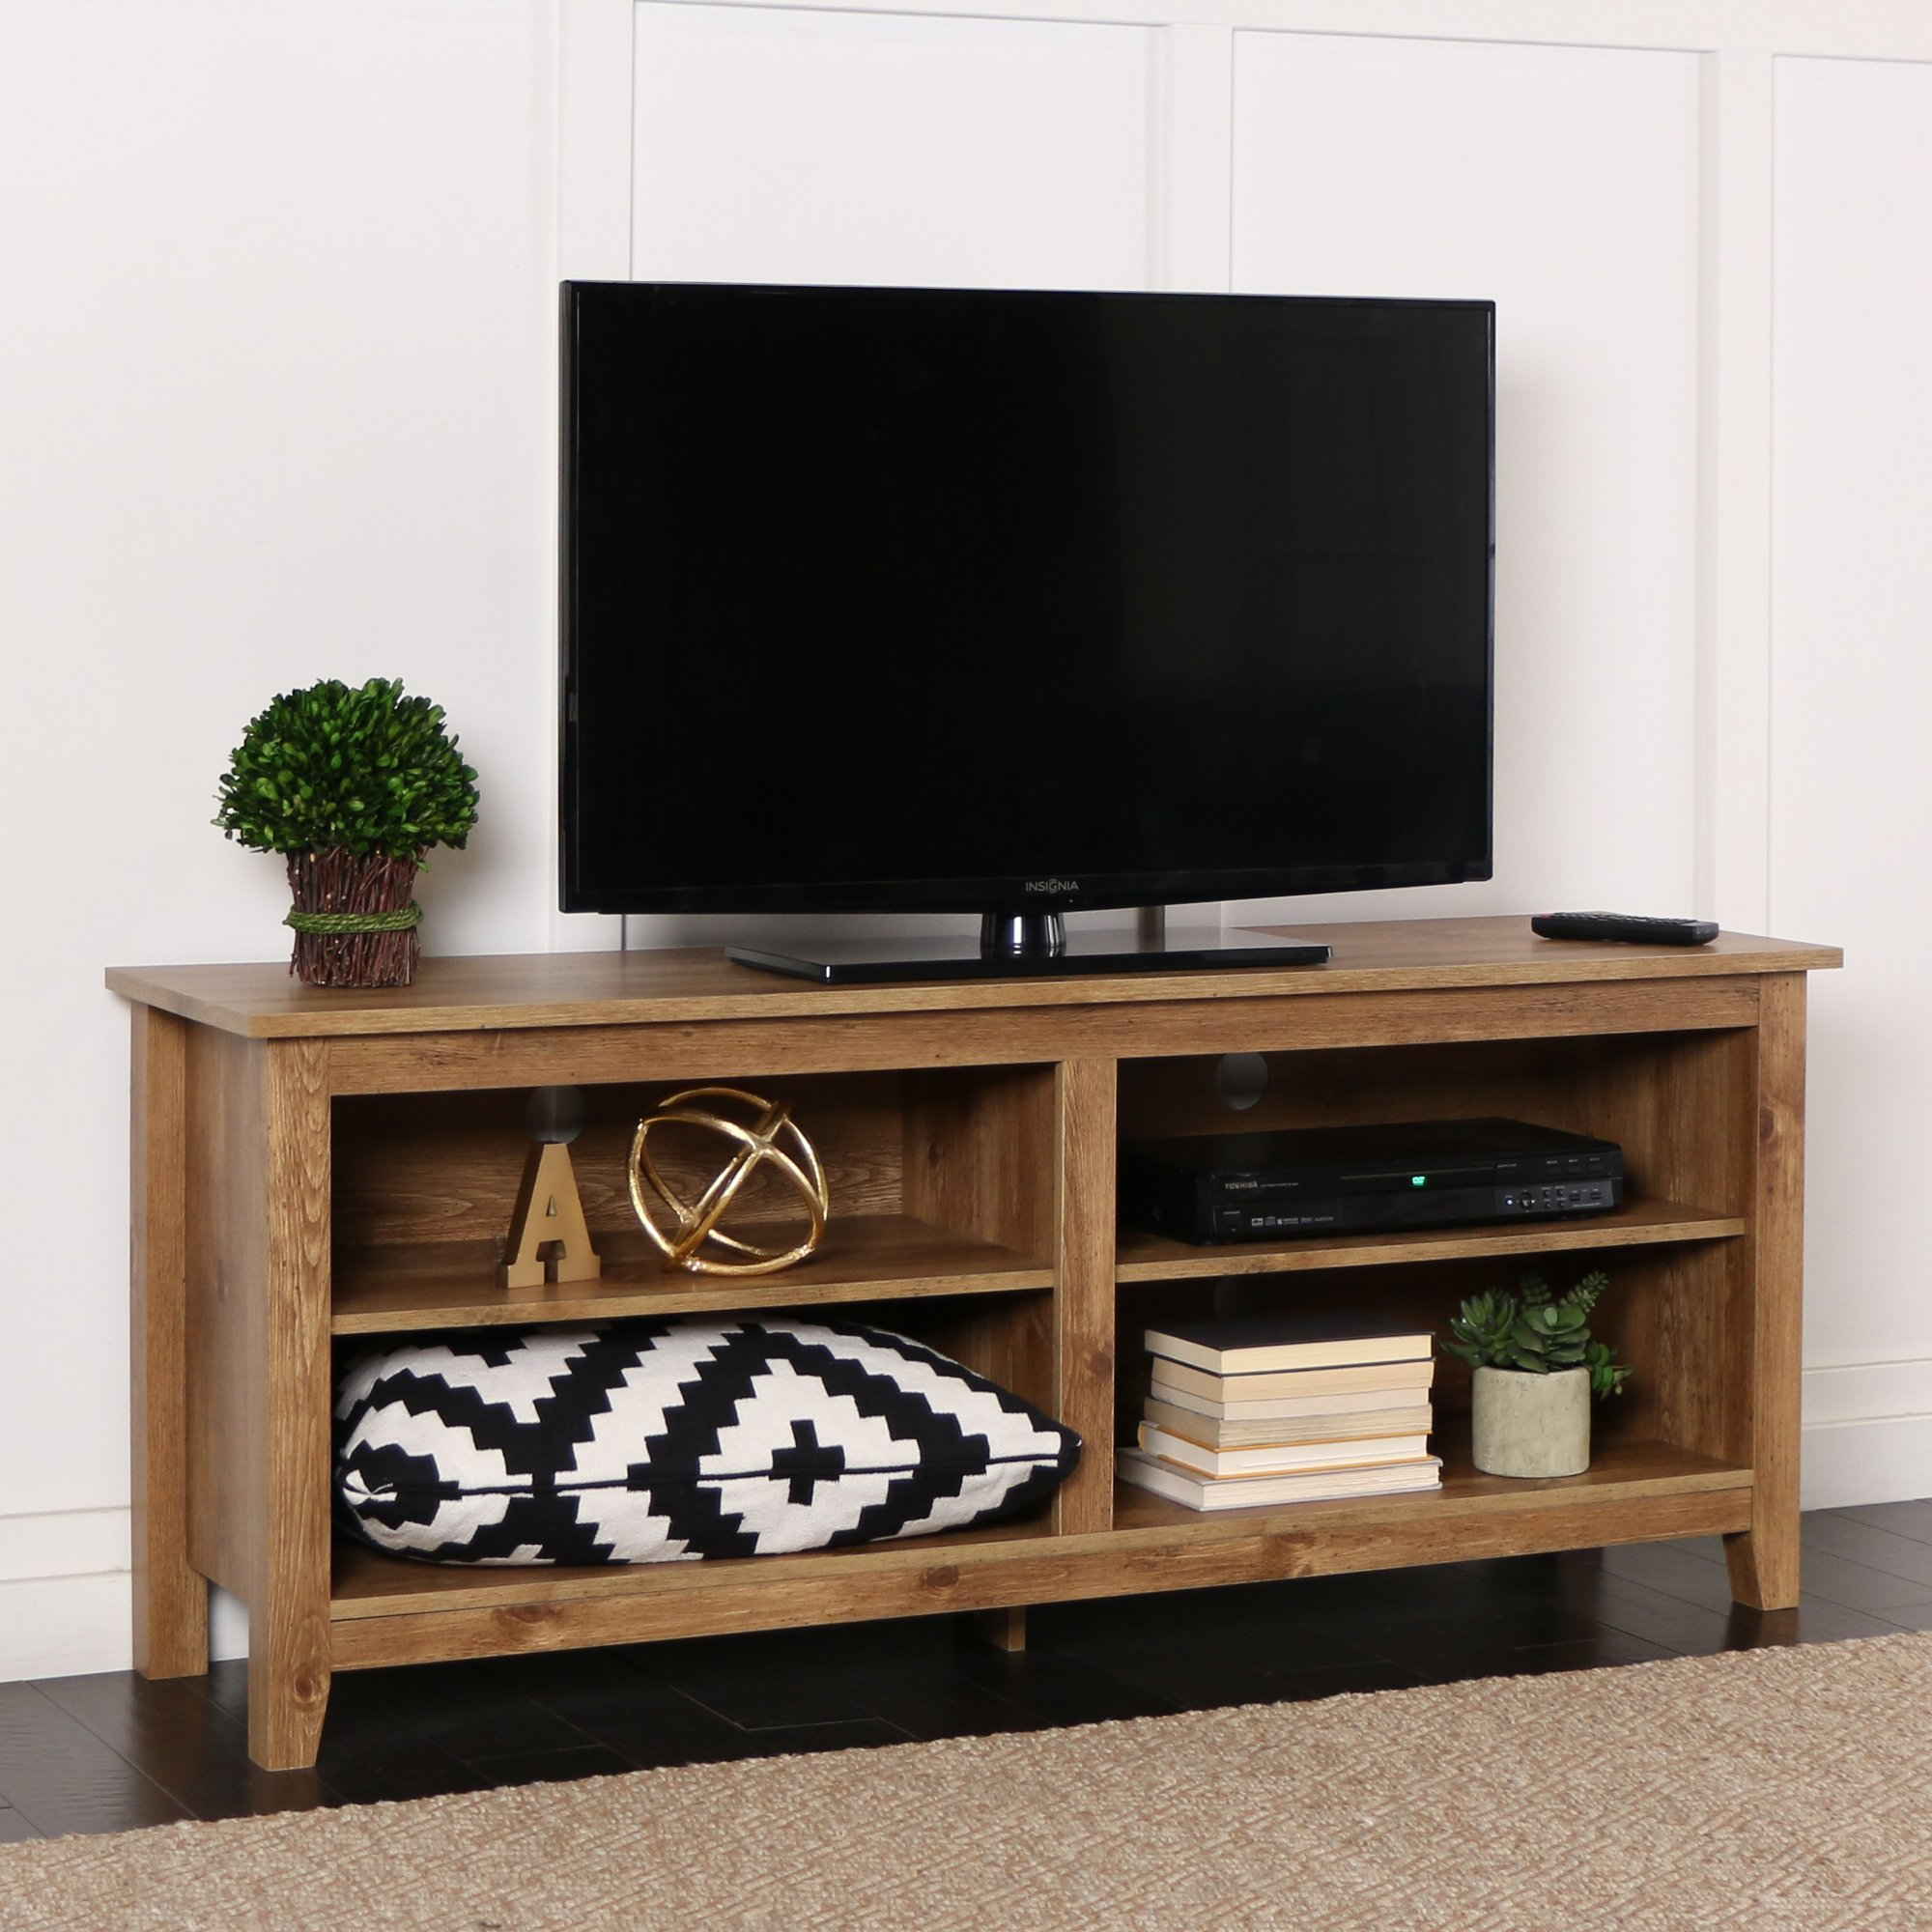 New 58 Inch Wide Barnwood Finish Television Stand by Home Accent Furnishings